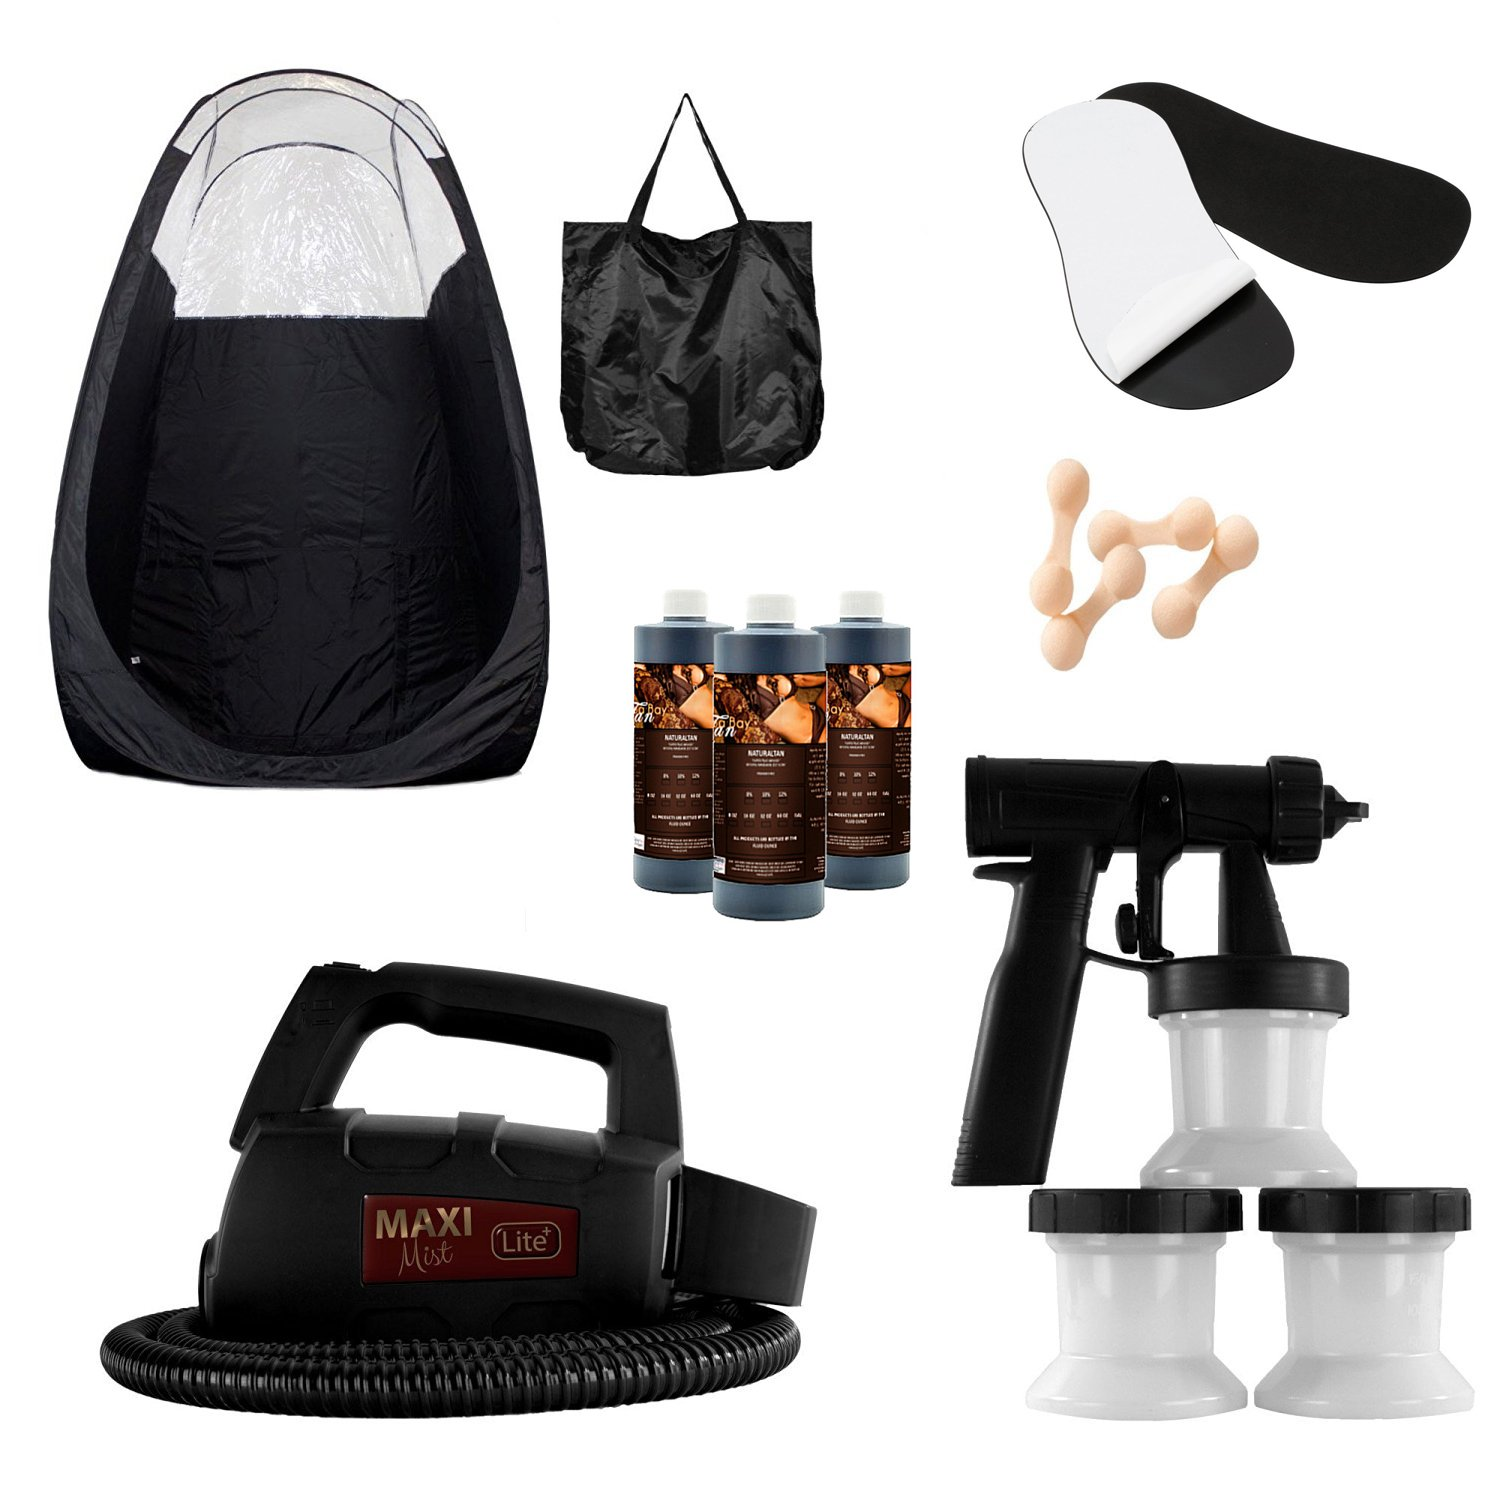 MaxiMist Lite Plus HVLP Sunless Spray Tan KIT w Tent, 25 pr foot protecters, 25 nose filters (Black Tent Black foot sole covers) by MaxiMist (Image #1)